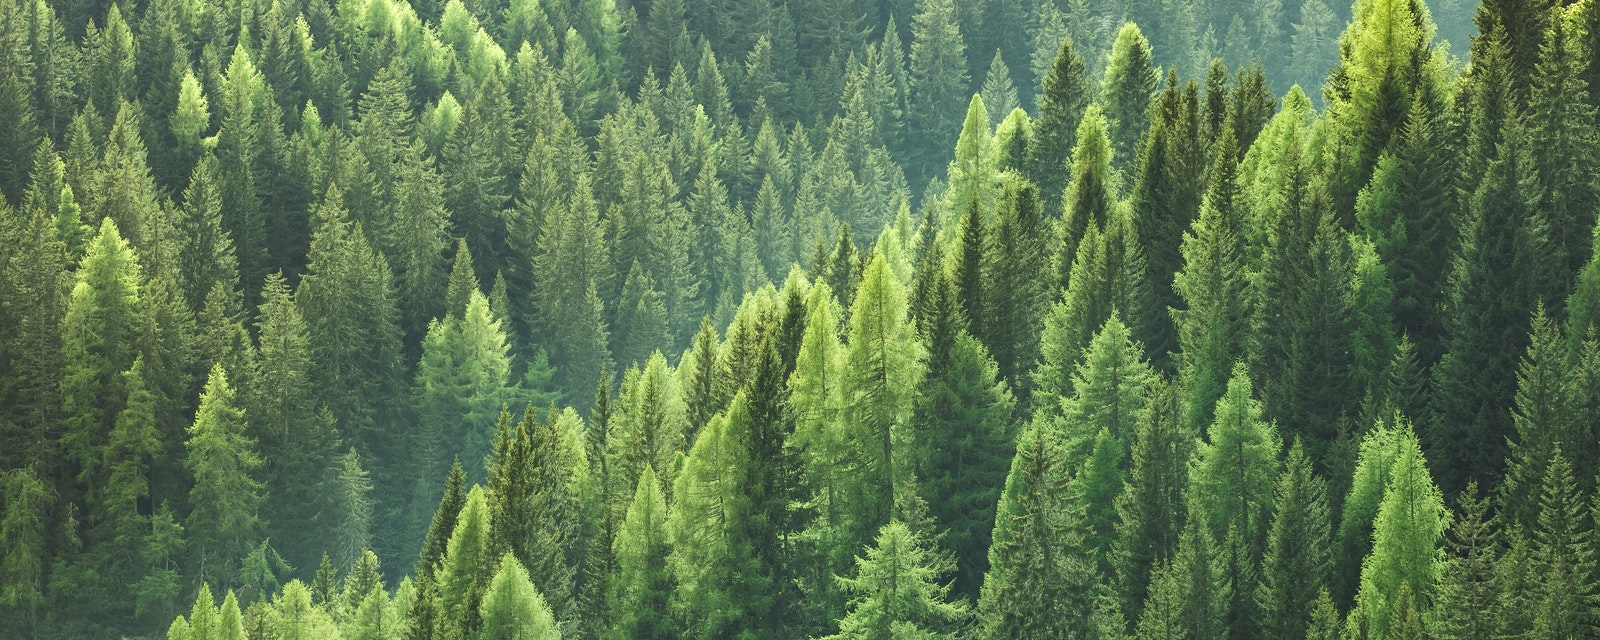 Healthy,Green,Trees,In,A,Forest,Of,Old,Spruce,,Fir